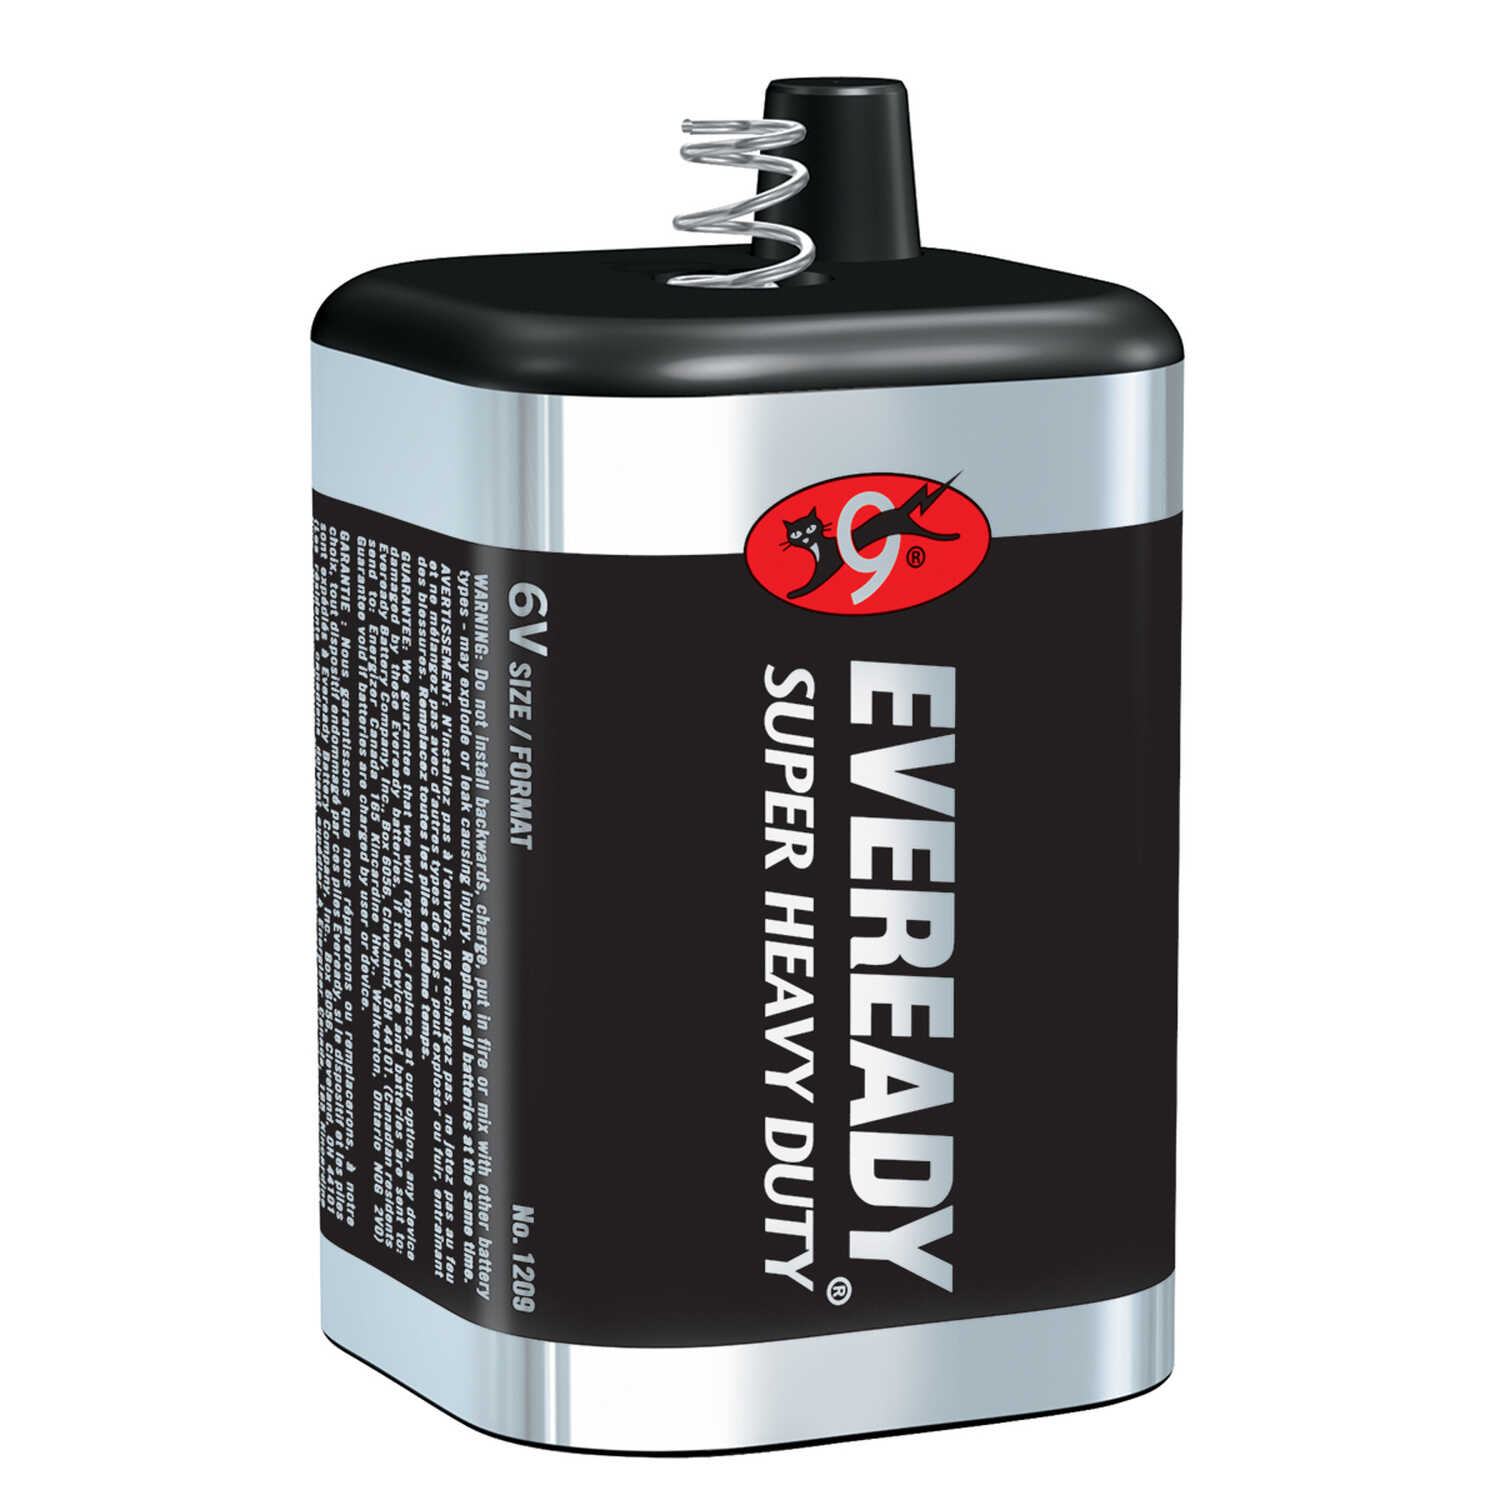 Energizer  Eveready  Zinc-Carbon  6-Volt  Lantern Battery  1 pk Bulk  Zinc Carbon